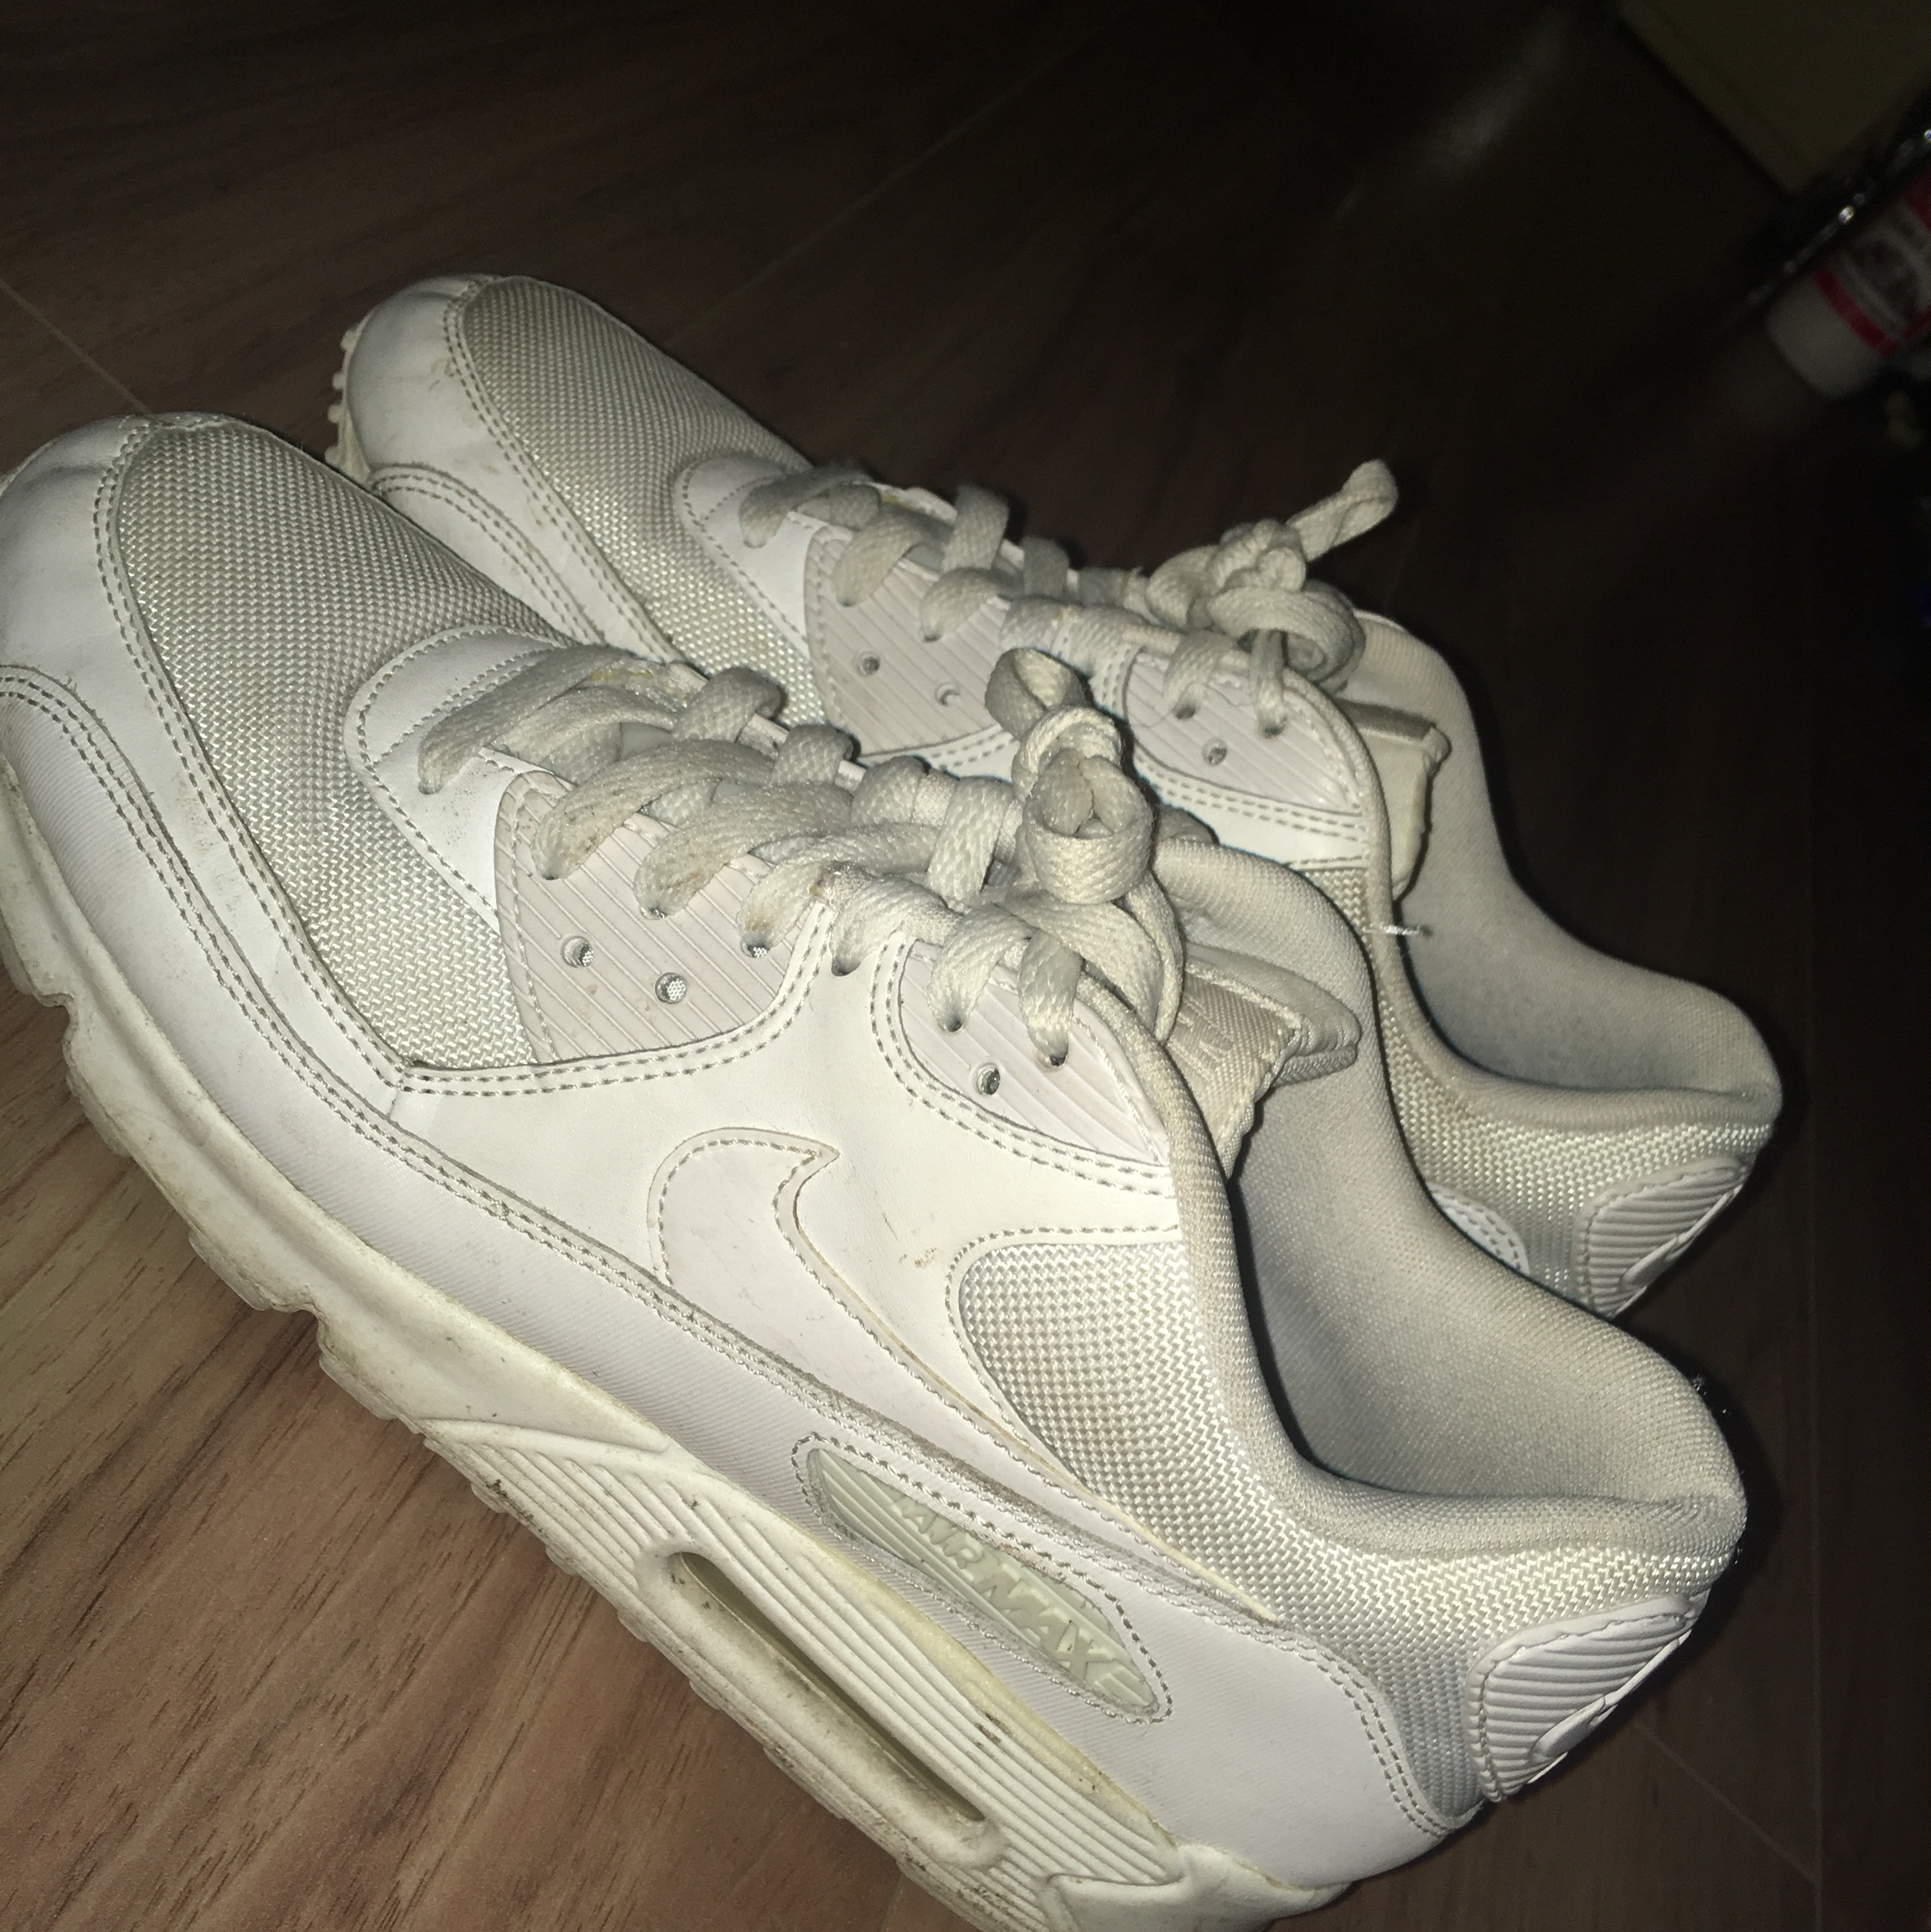 Nike Air max 90 white , allot cleaner in person Depop